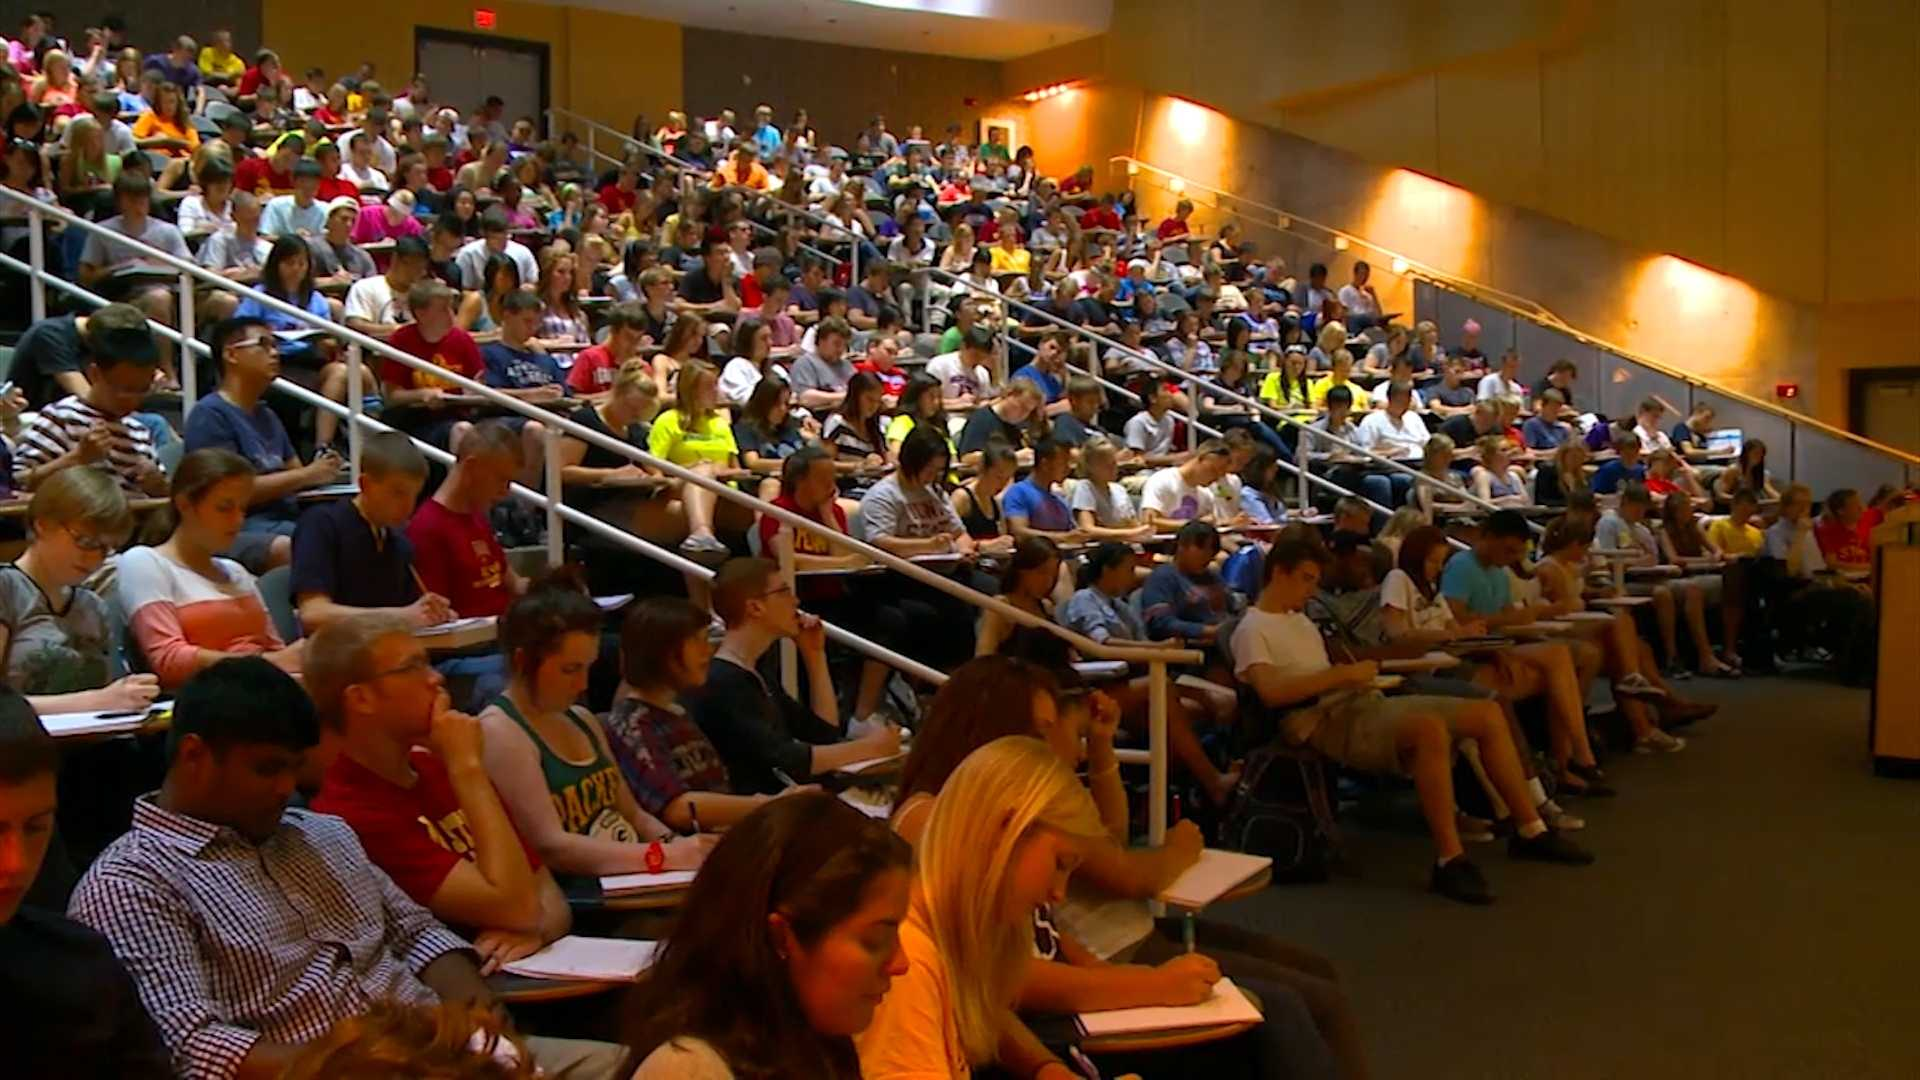 President's message on college costs comes as ISU students prep for classes